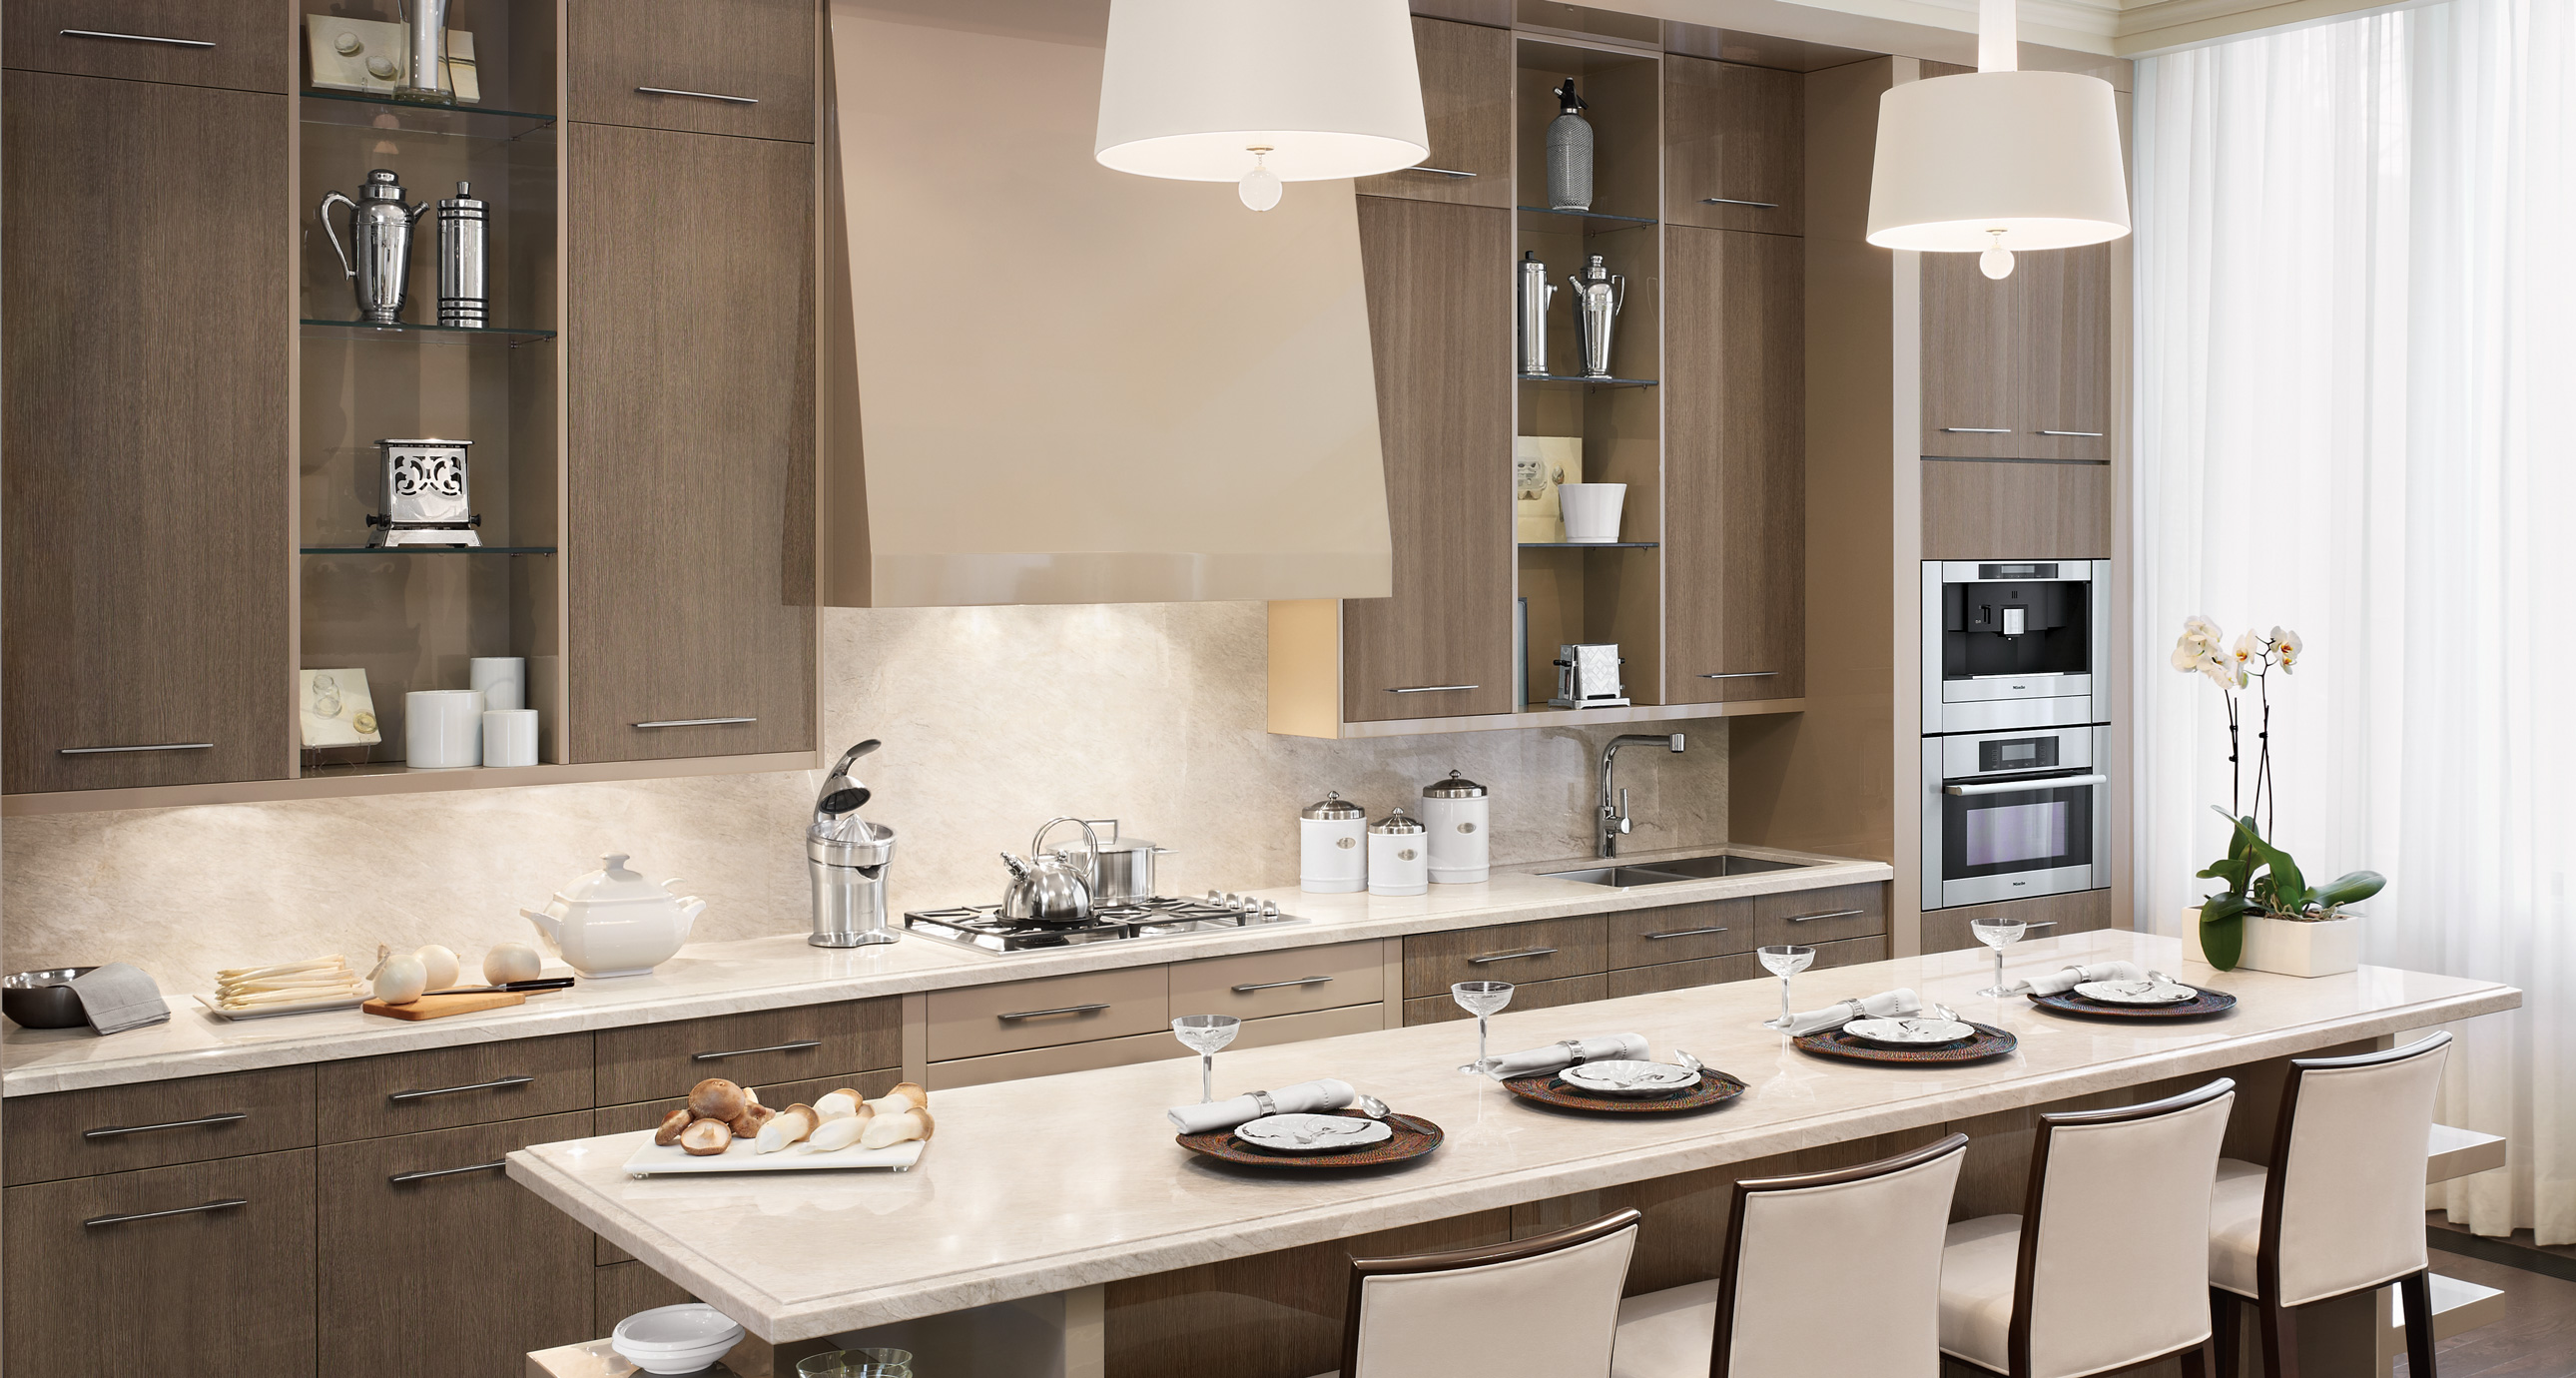 Home Interiors Mississauga Everyday Elegance Downsview Kitchens And Fine Custom